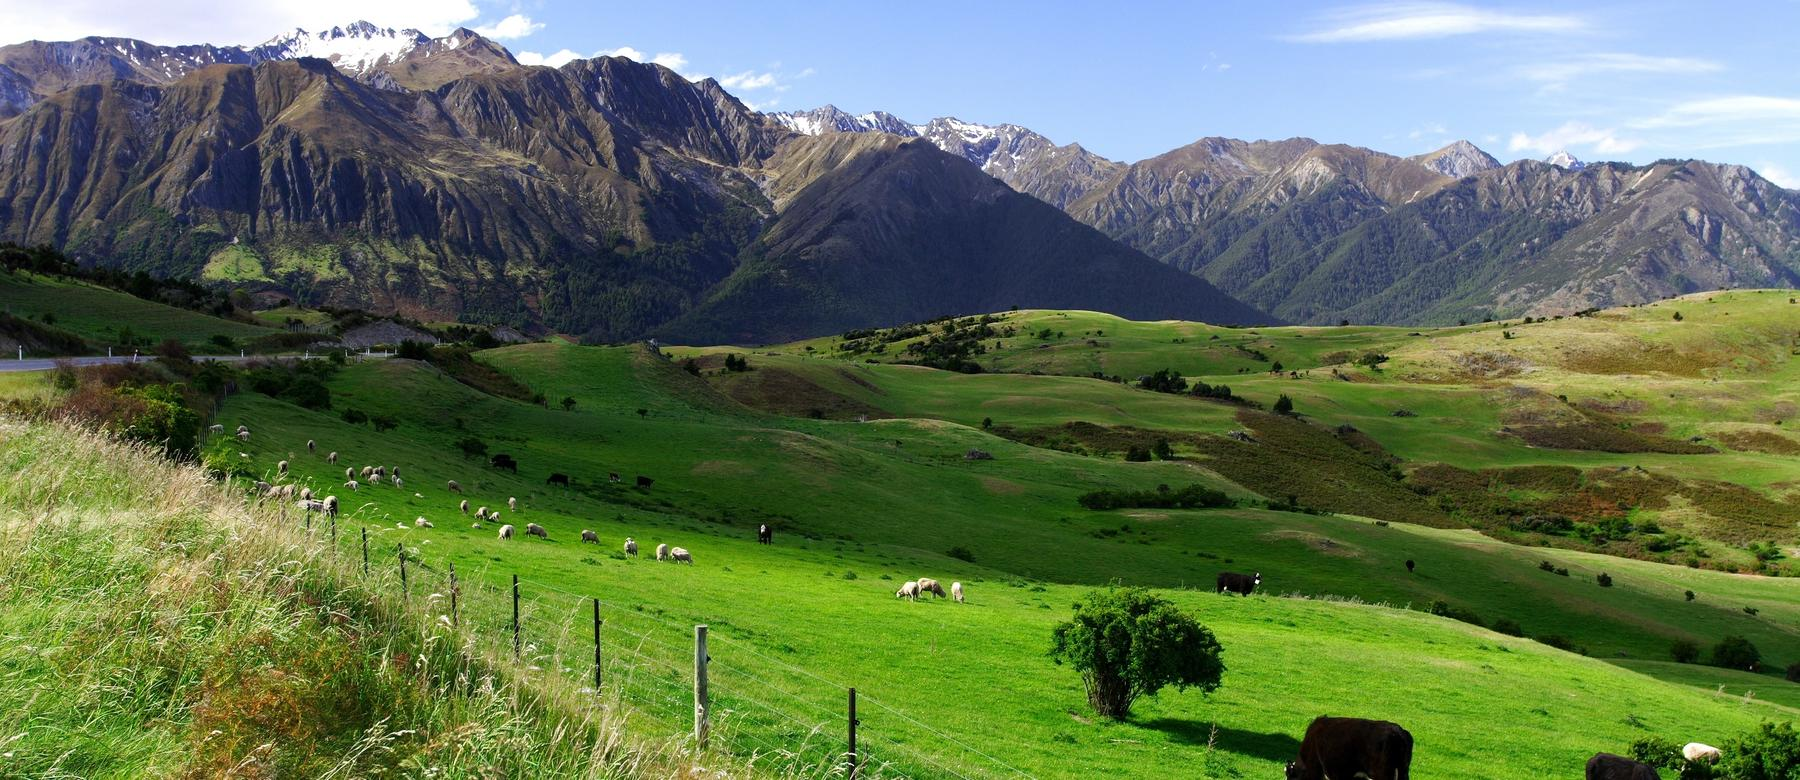 NZ country landscape, mountains and cows